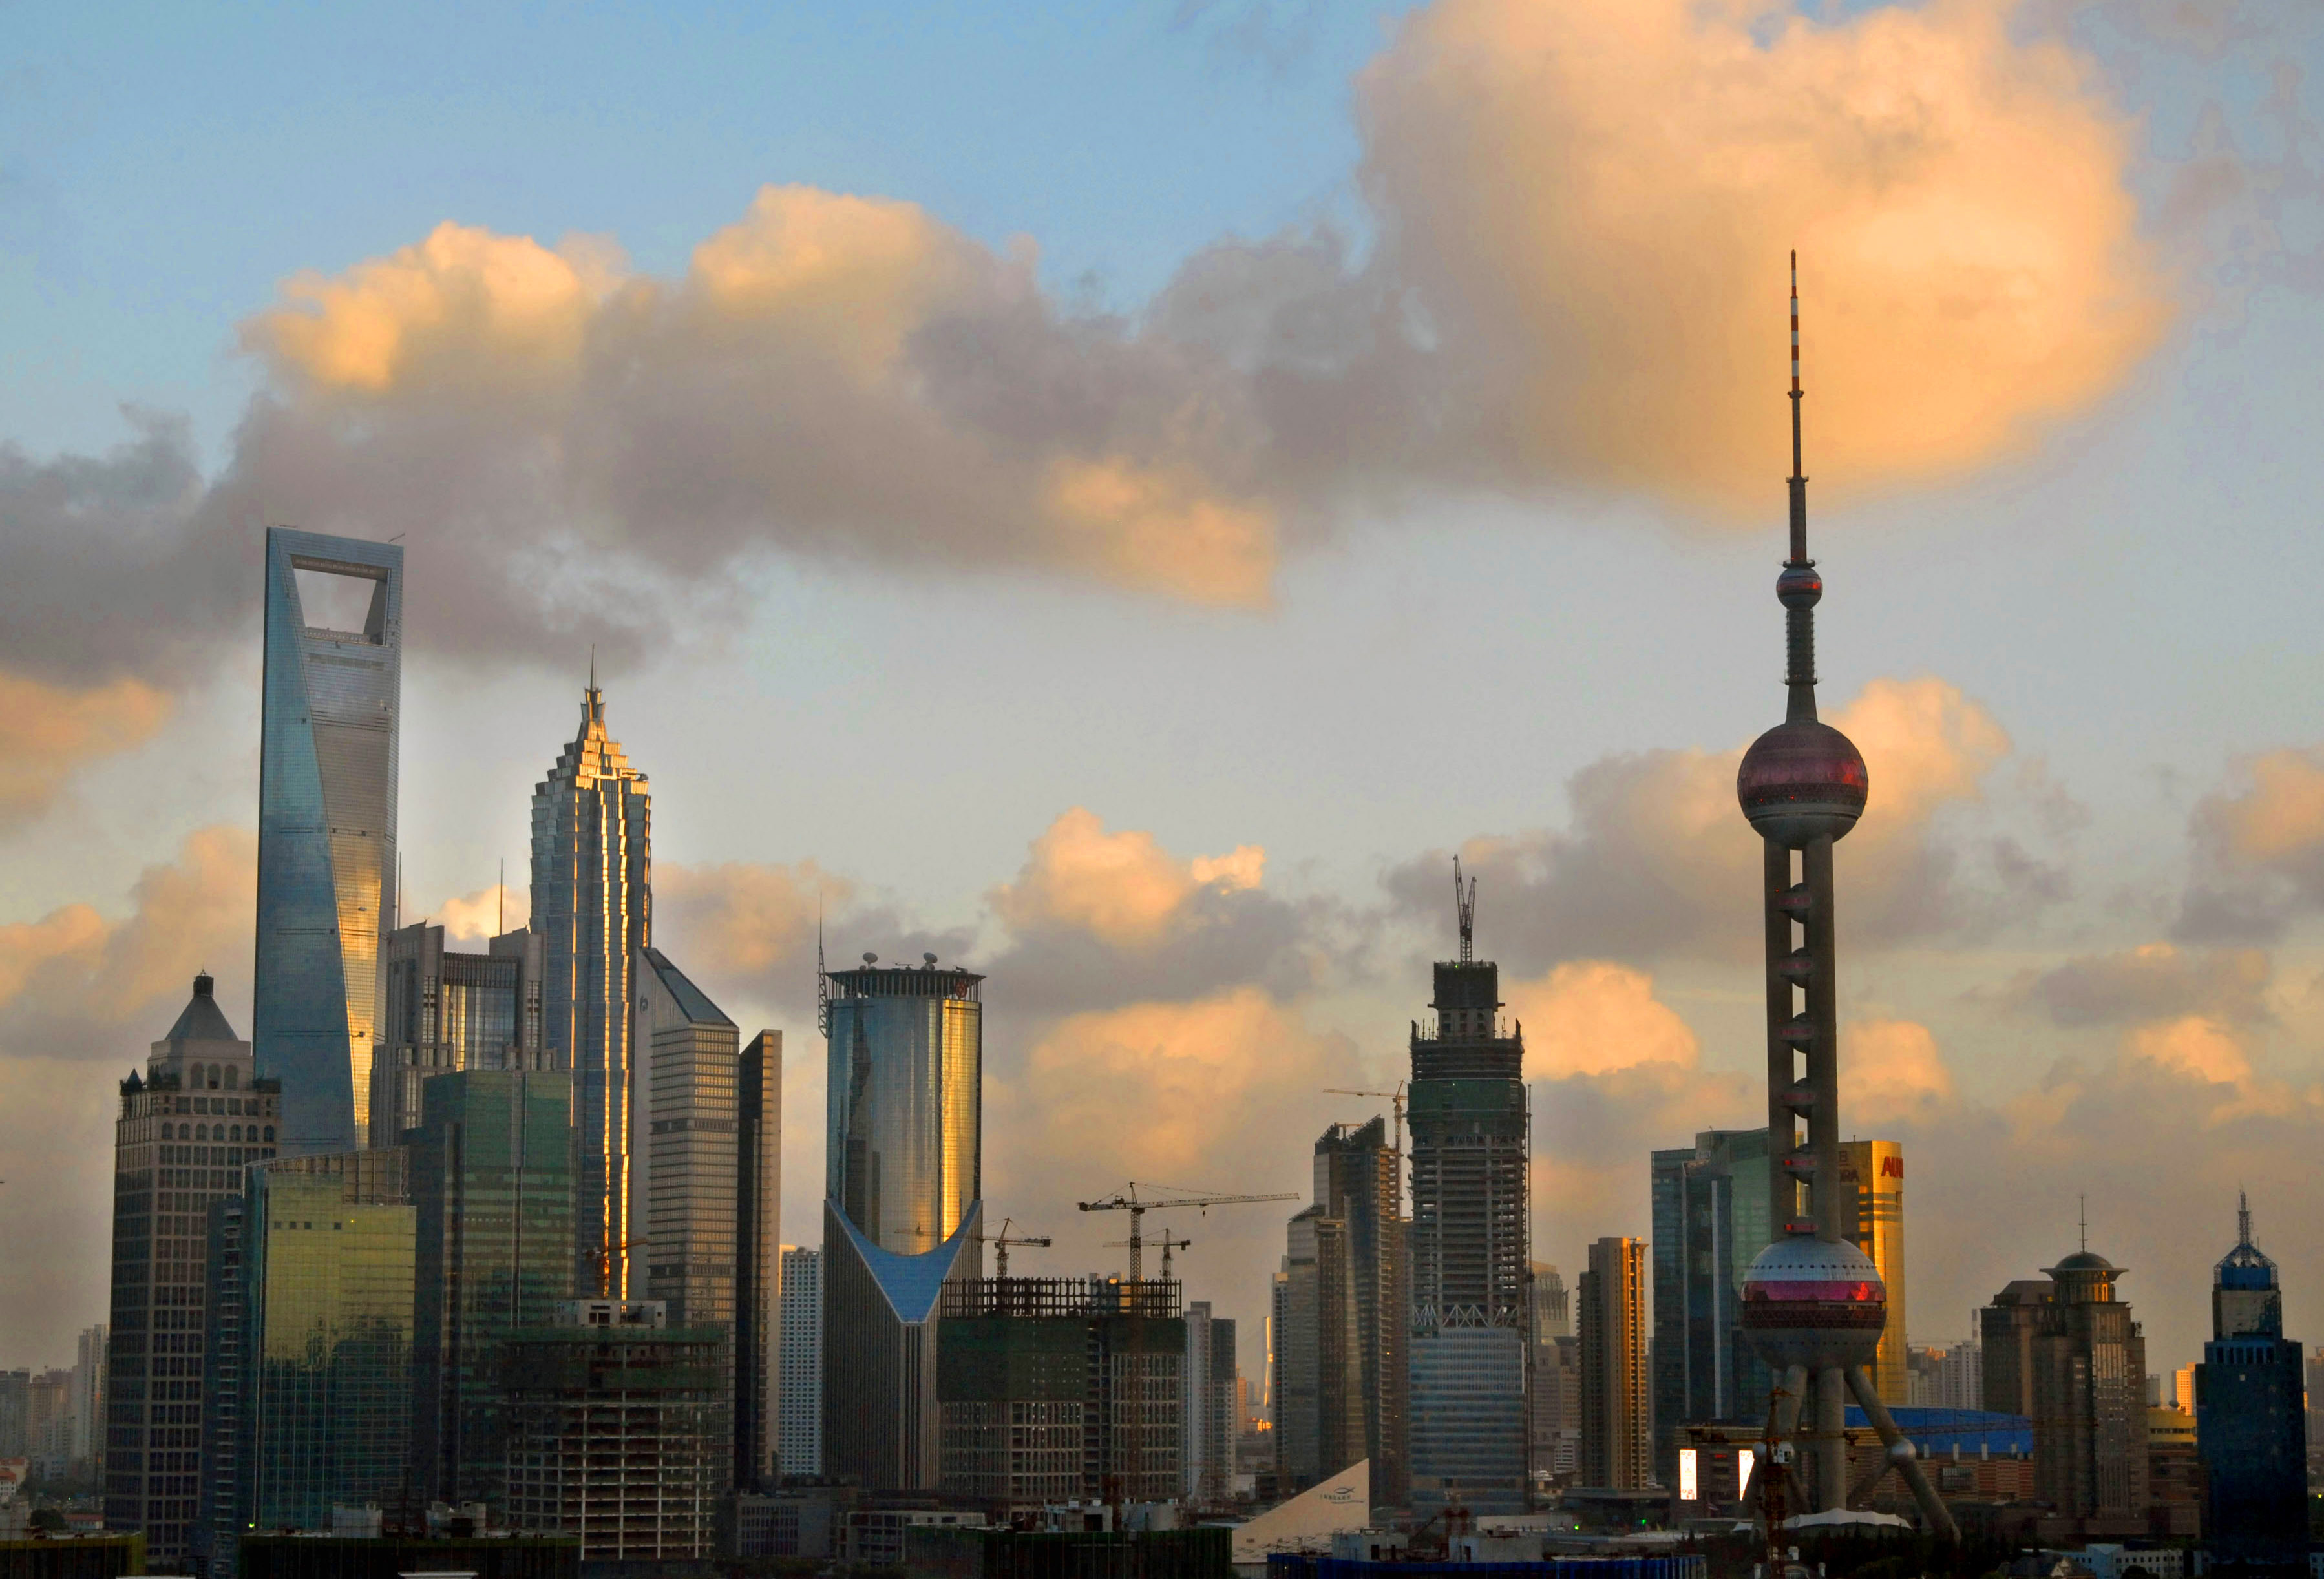 Shanghai Tower In China Has World's Fastest Elevator CNN Style Fascinating China Tallest Building Shanghai Tower Gets Final Beam